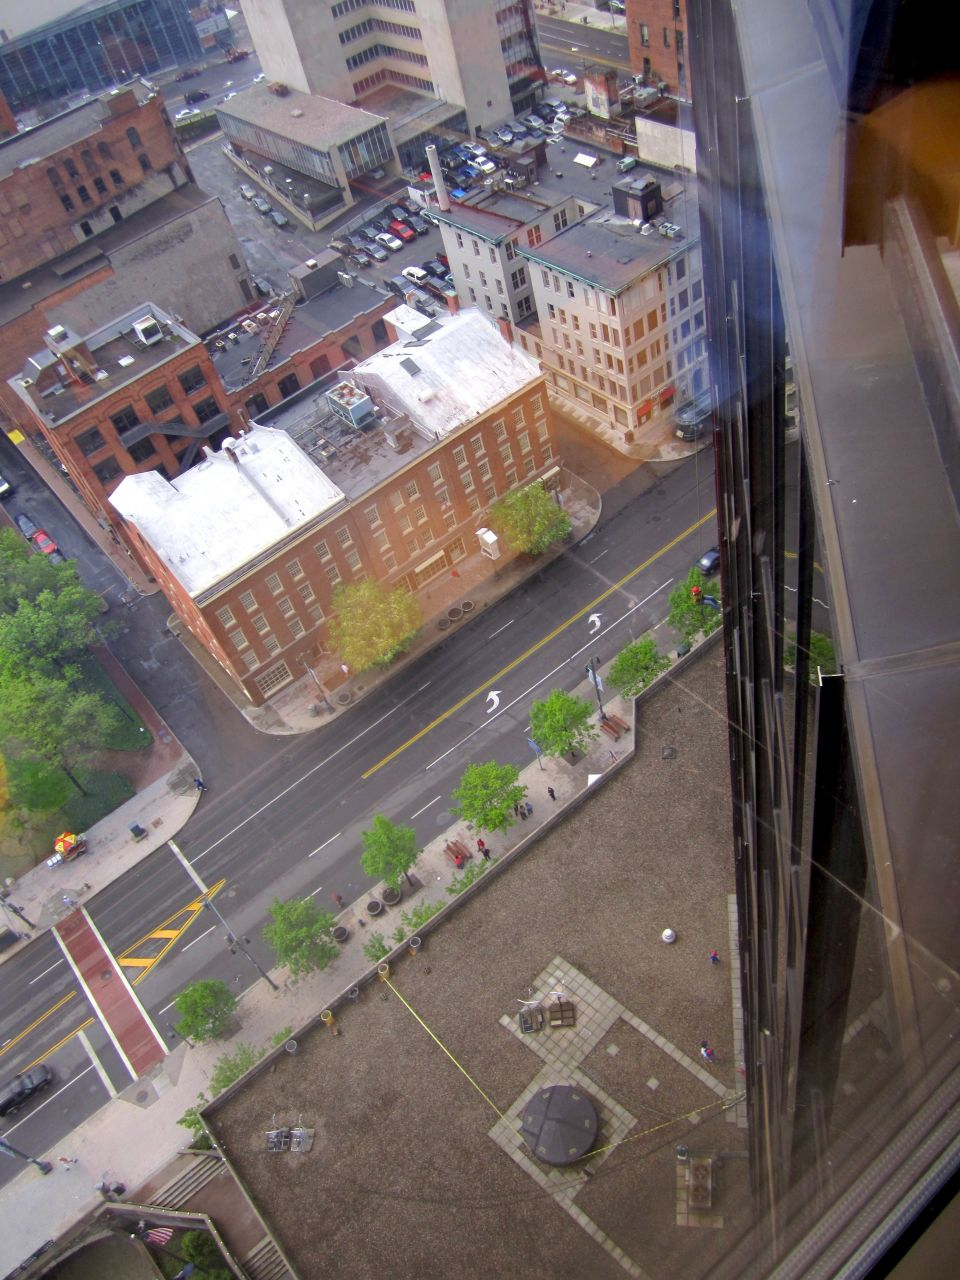 The view from 19 stories, not 21 the repel was from.